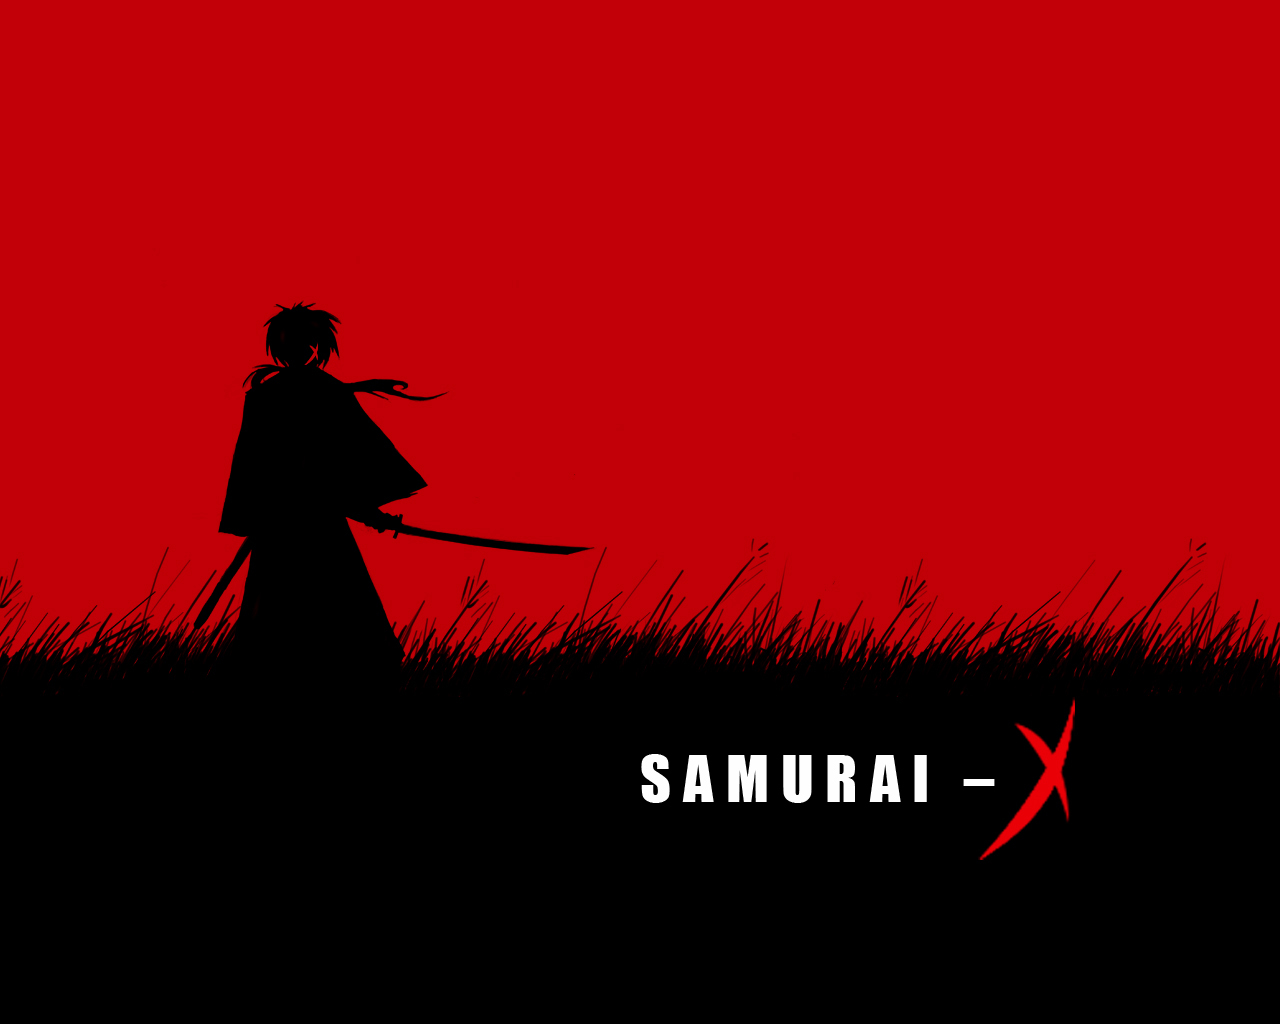 samurai Kenshin samurai x HD Wallpaper